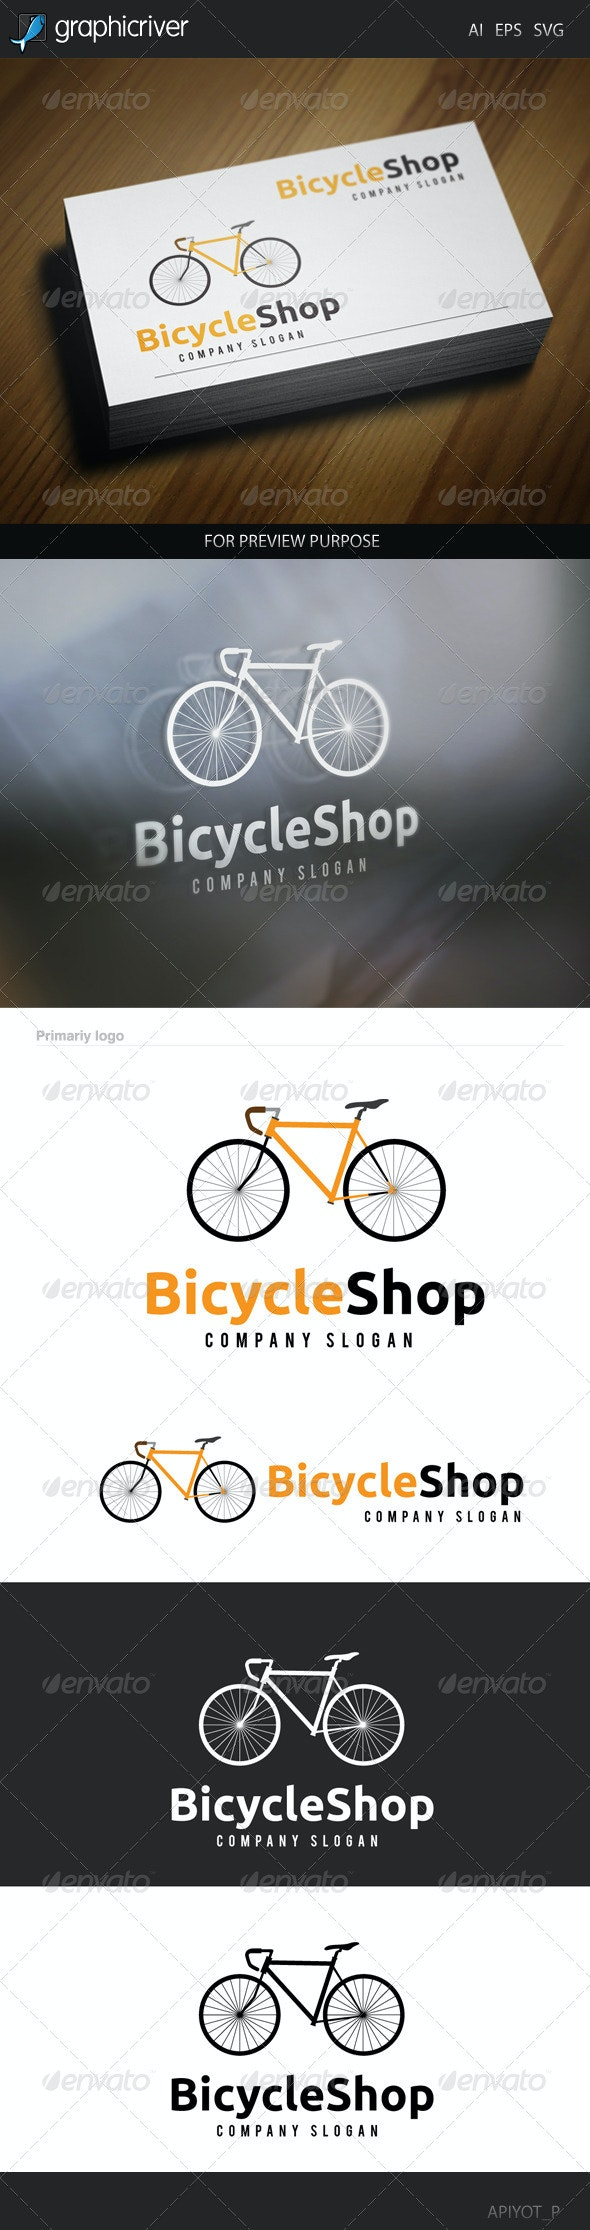 Bicycle Shop Logo